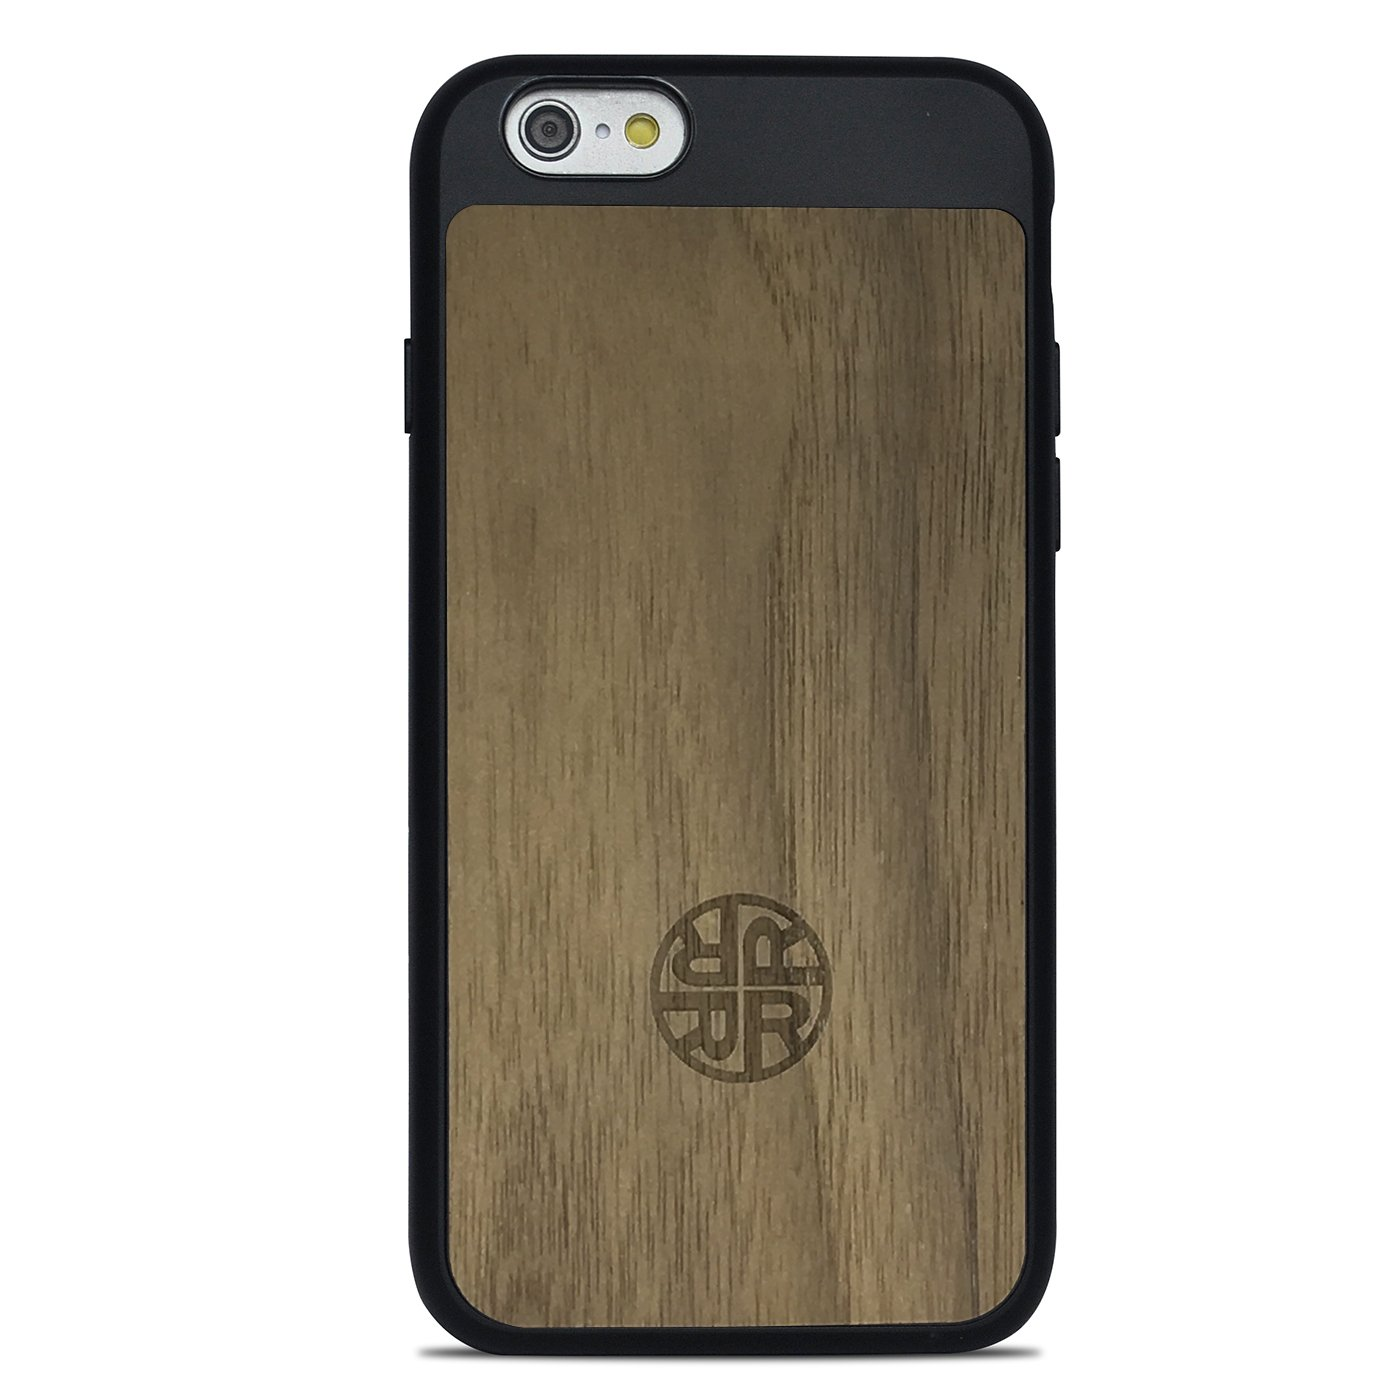 Reveal Extra Protective Wood Case Compatible with iPhone 7/8 - Wooden Cover with Silicon Shell for Extra Protection & Durability - Eco-Friendly Design Shop (Walnut/Black)